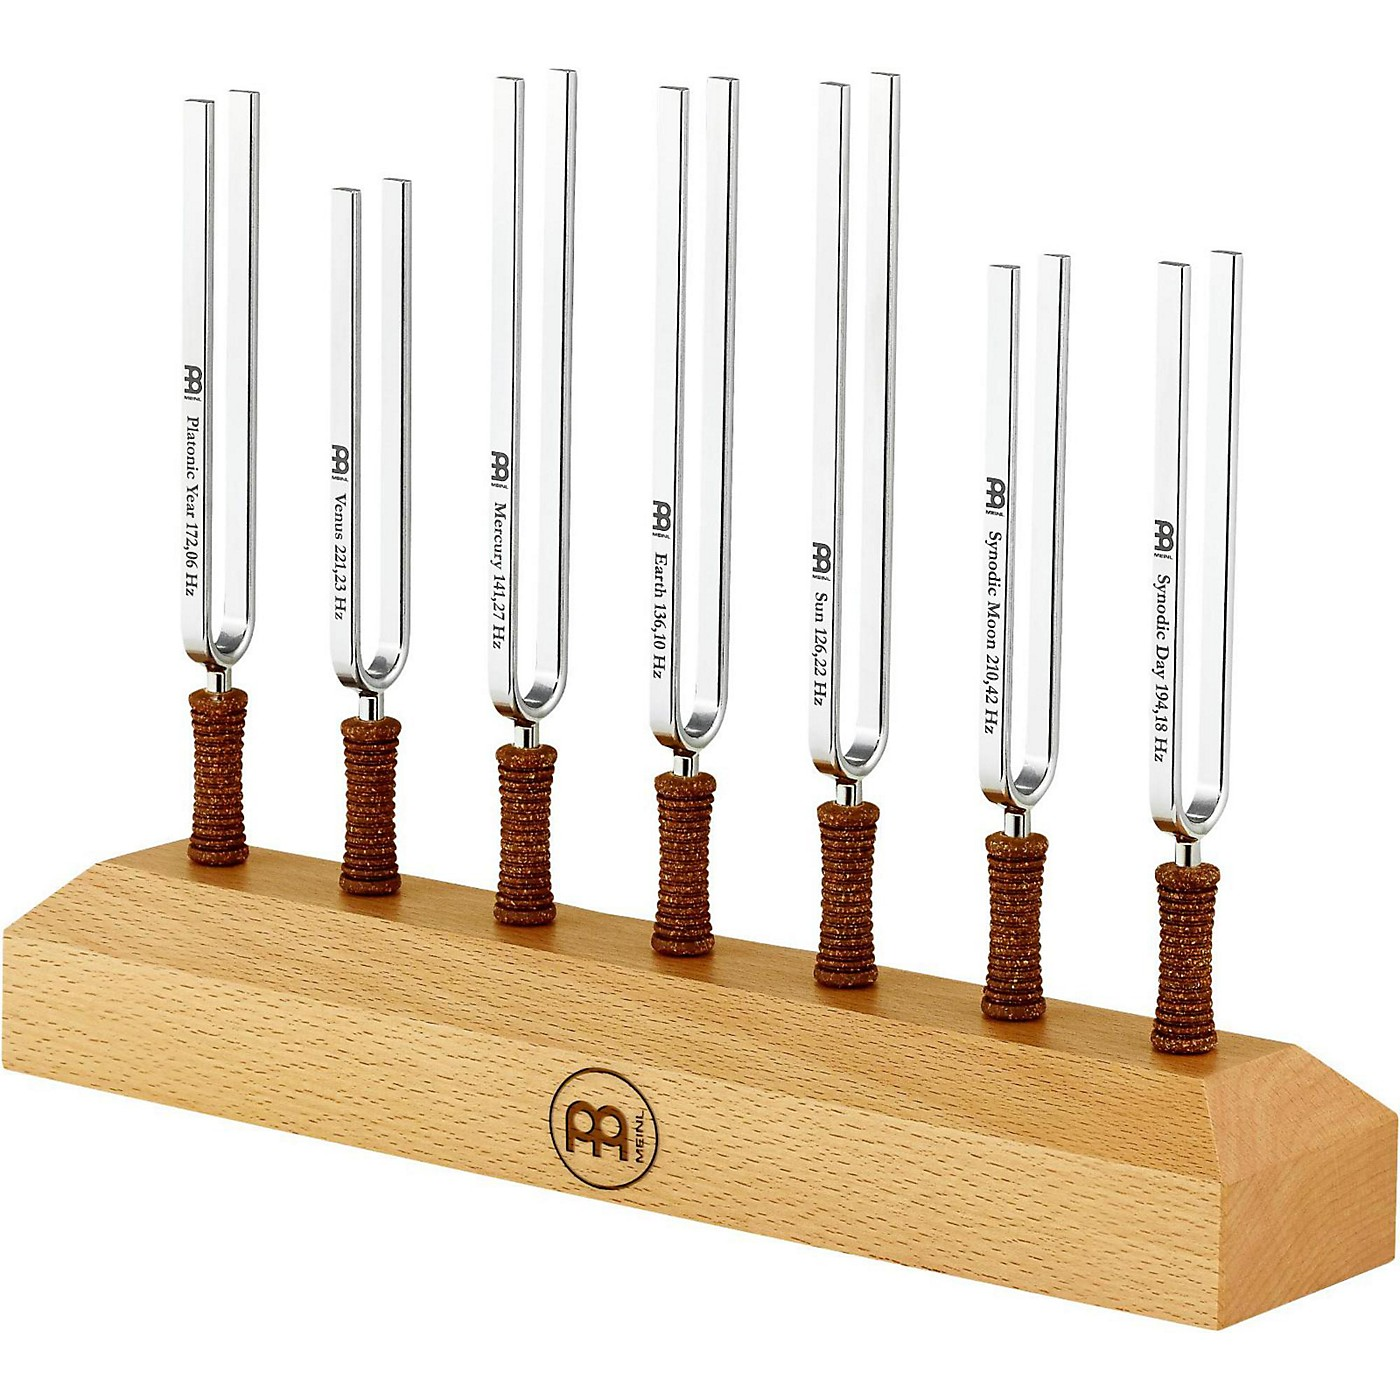 Meinl Sonic Energy Solid Beech Wood Tuning Fork Holder thumbnail